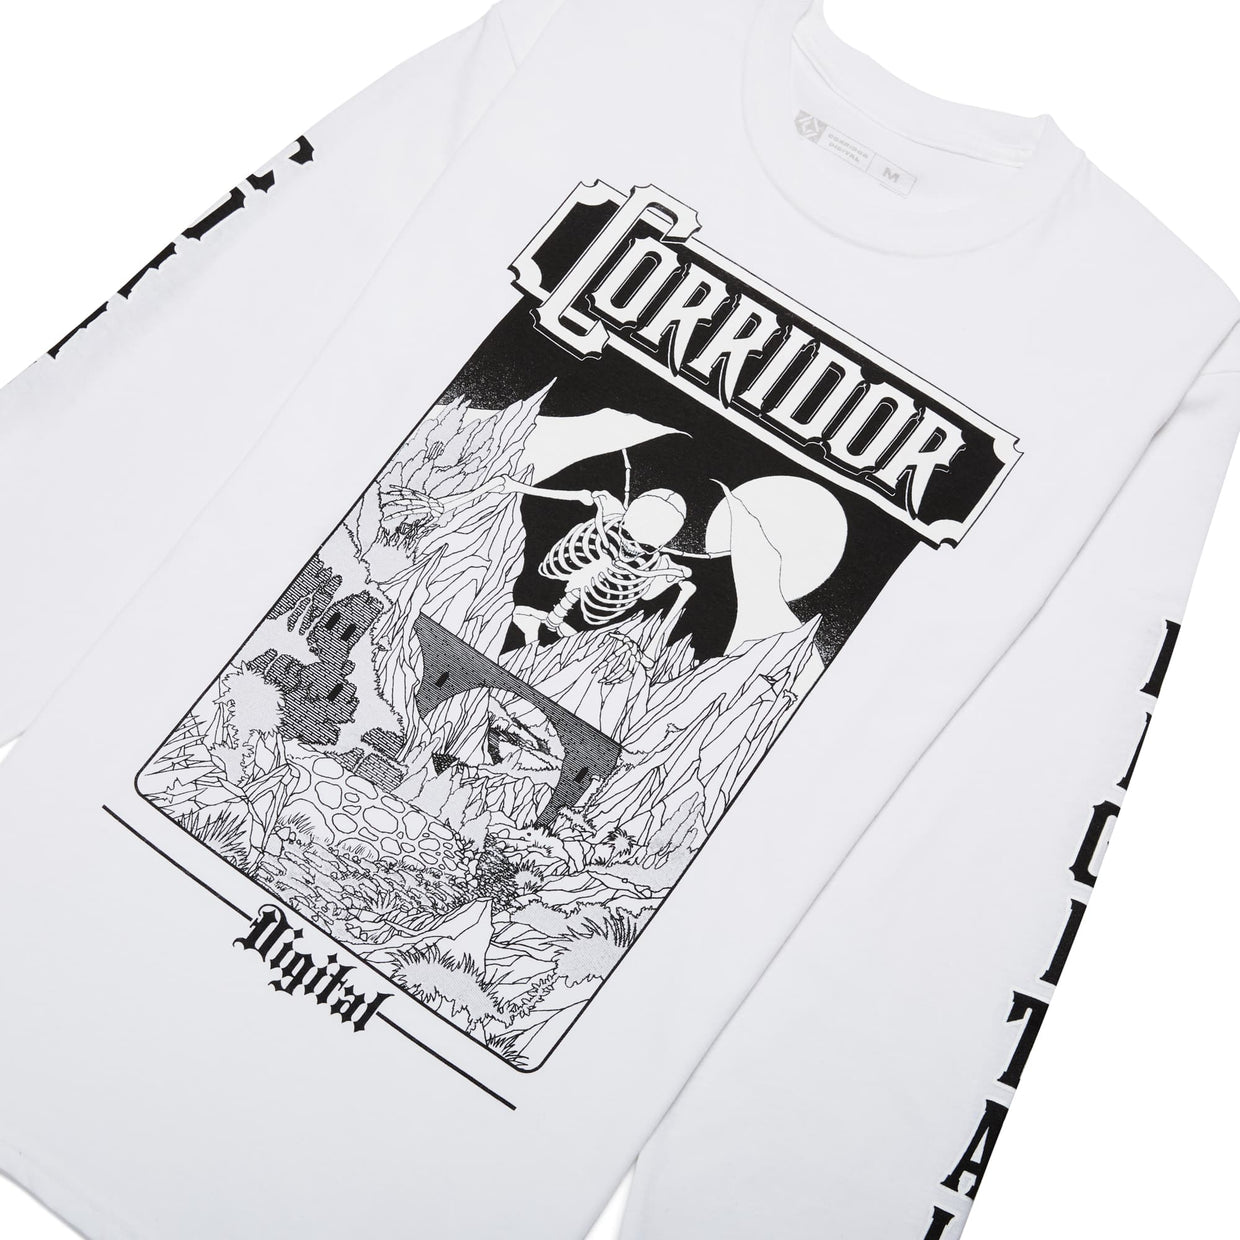 Corridor 'D&D' Reflective & Glow In The Dark Long Sleeve Tee - LIMITED EDITION